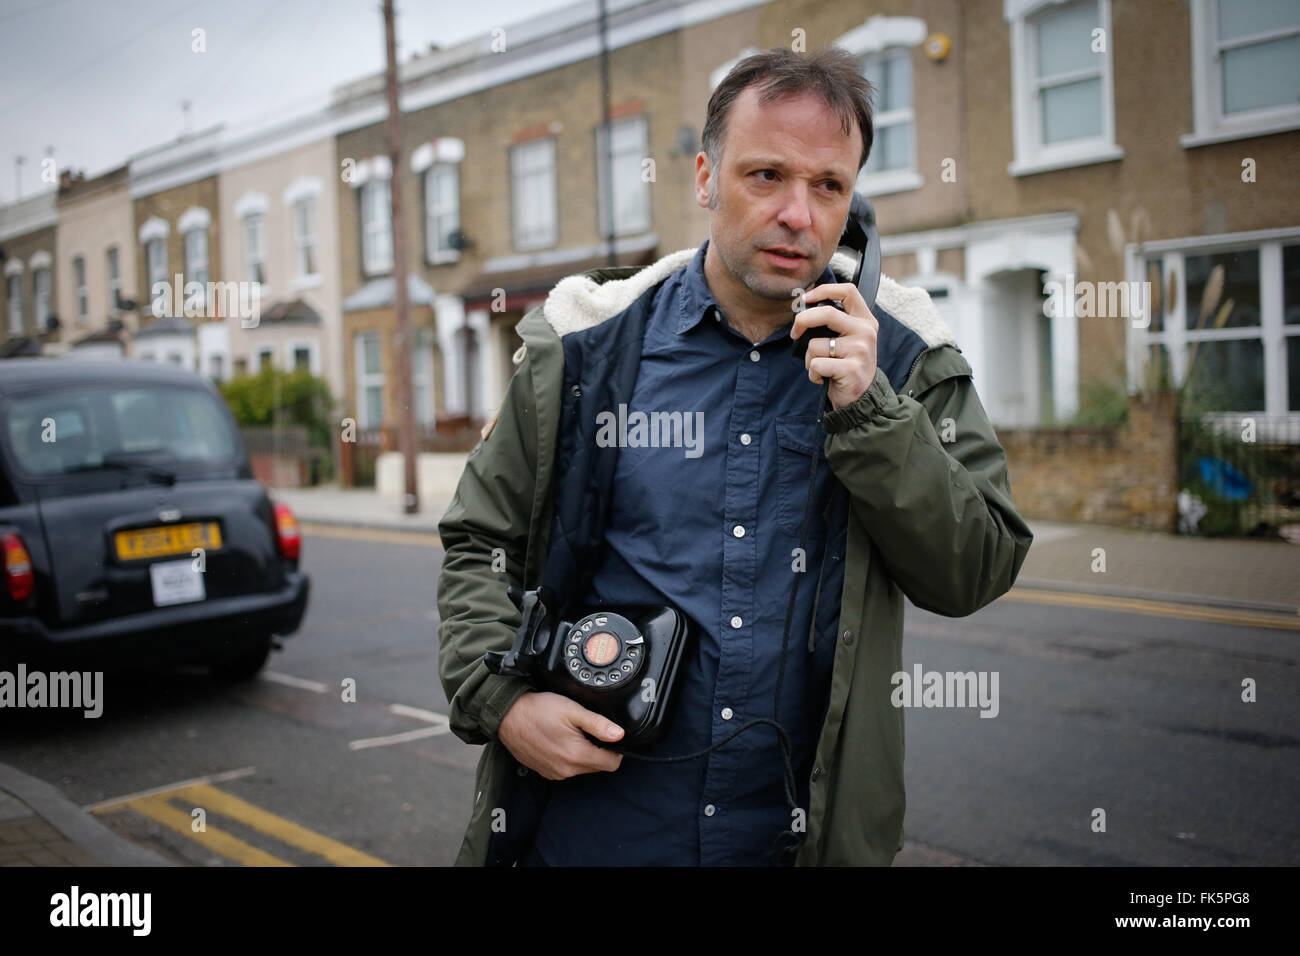 A man talks on an old style telephone in east London March 15, 2015. - Stock Image